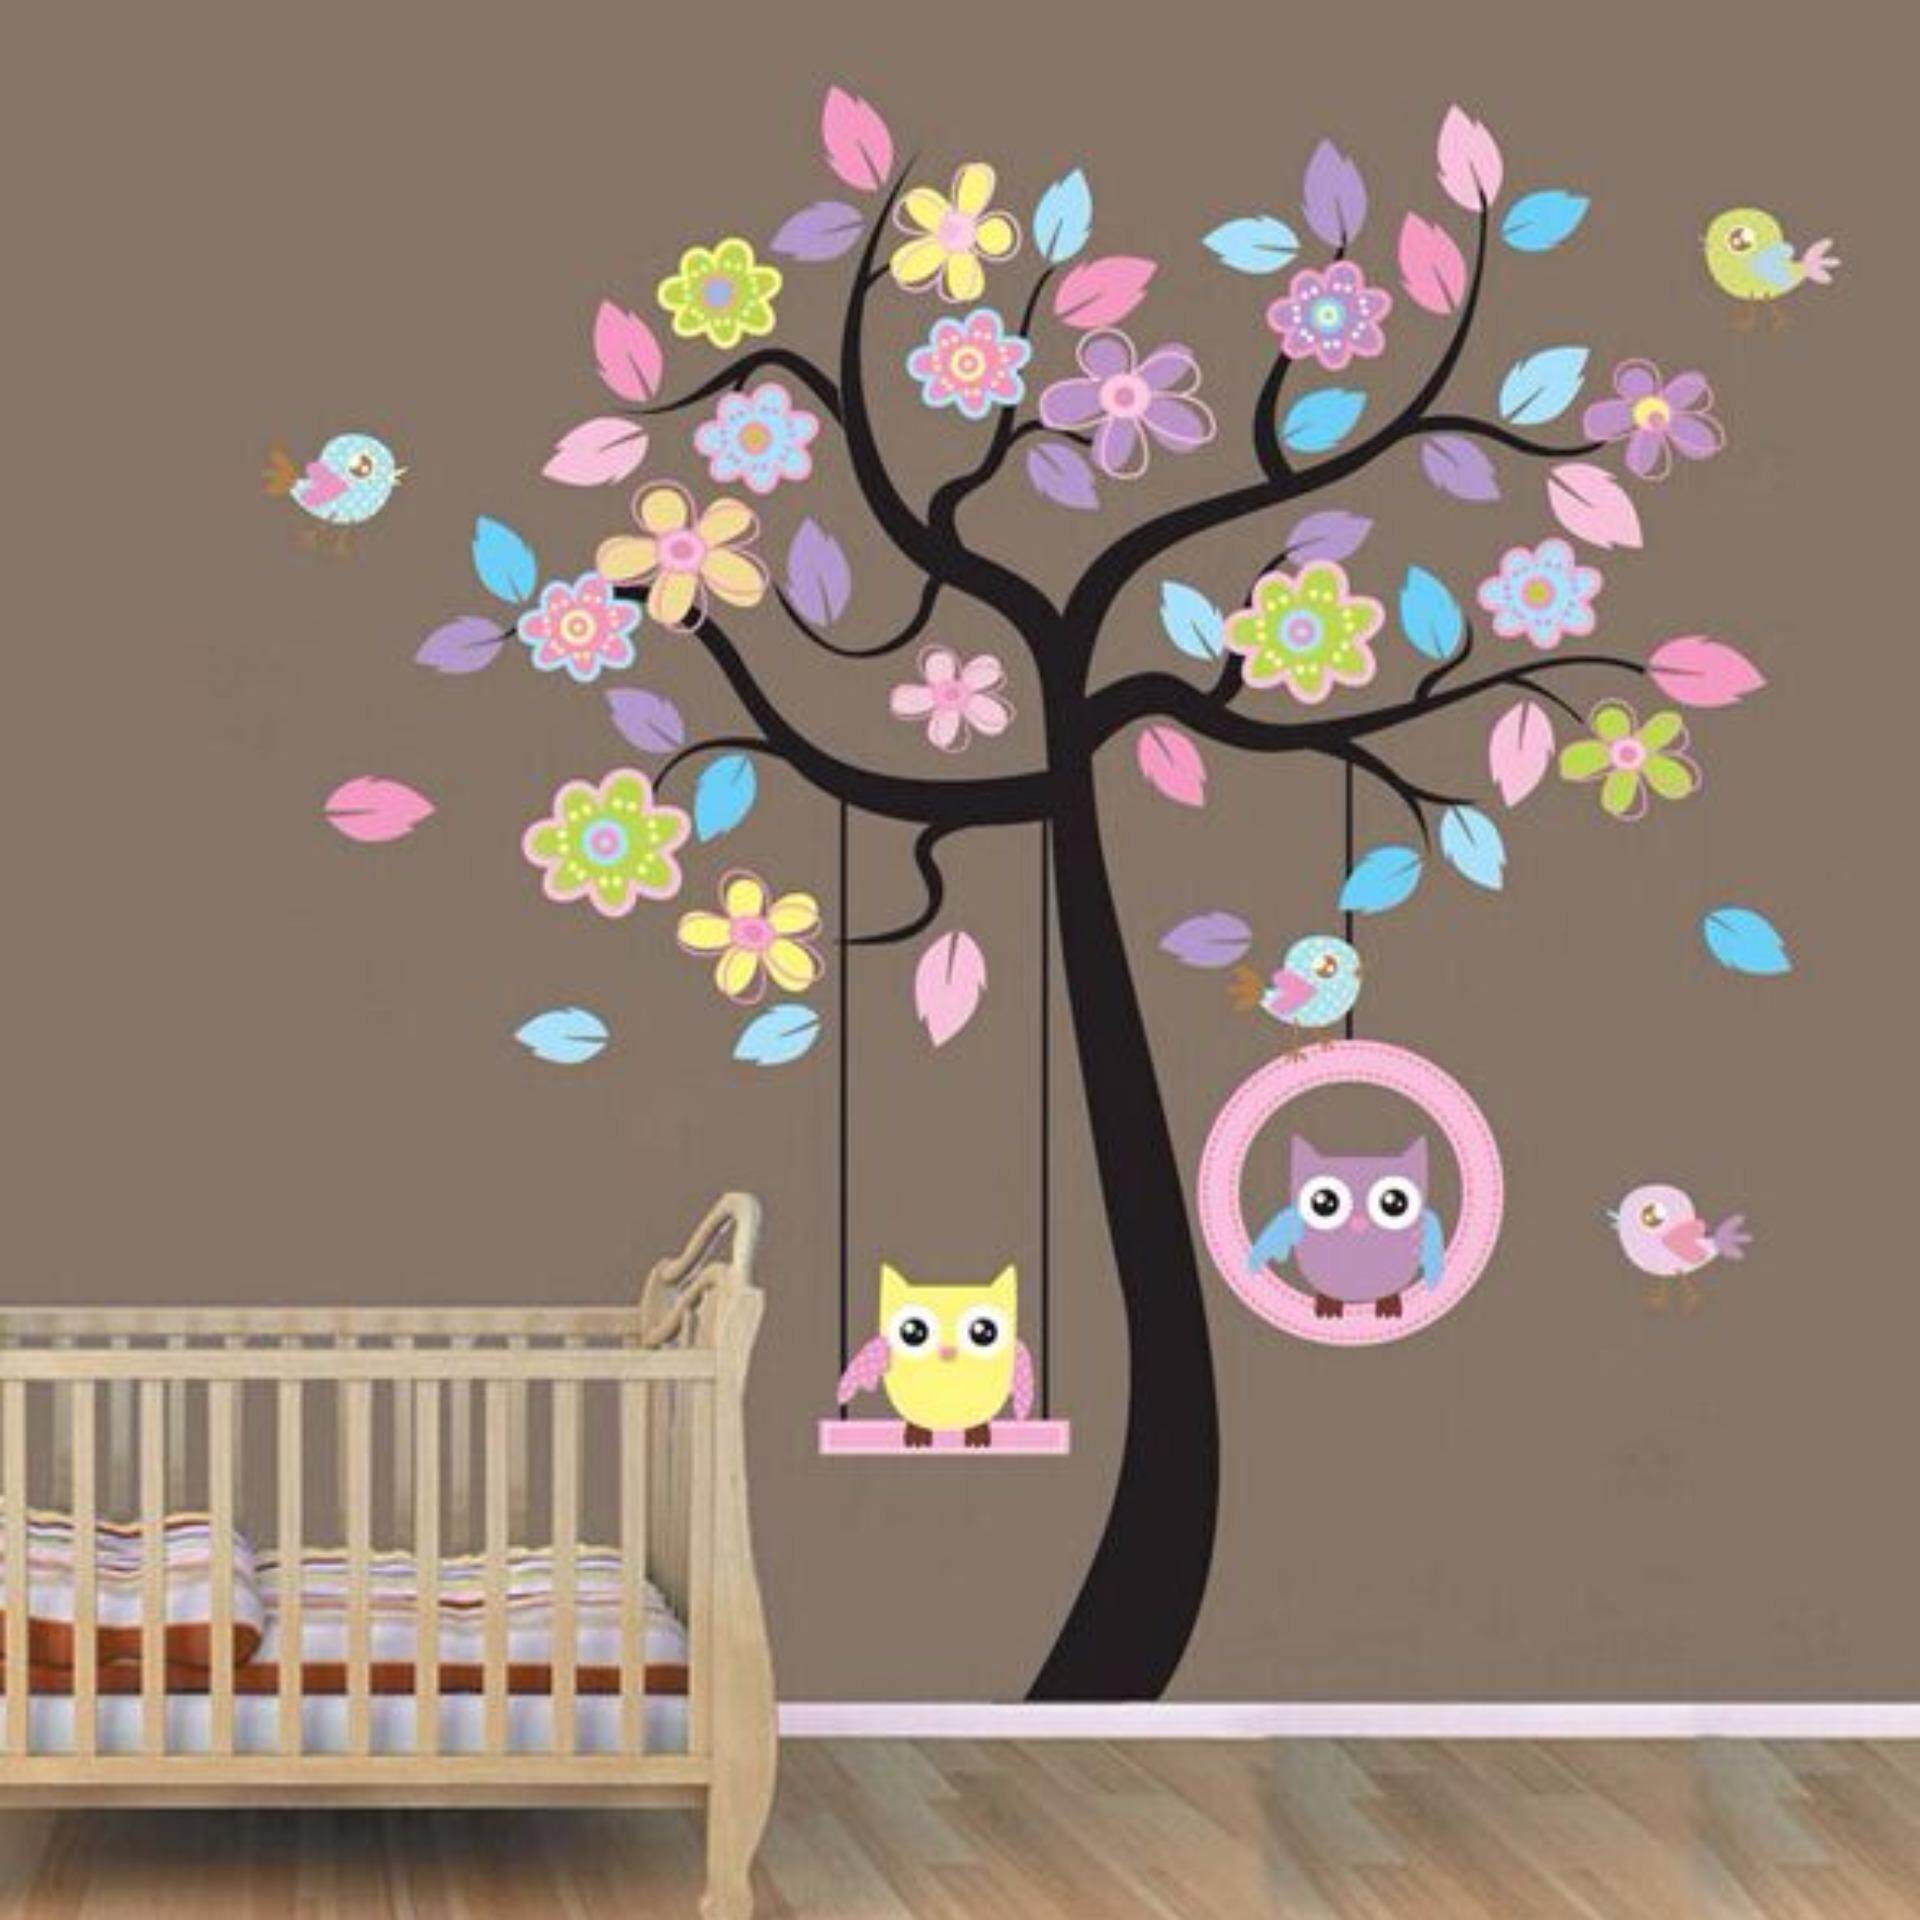 Cute Owl Flower Tree Wall Stickers Kids Nursery Room Decor | Lazada Malaysia Part 54